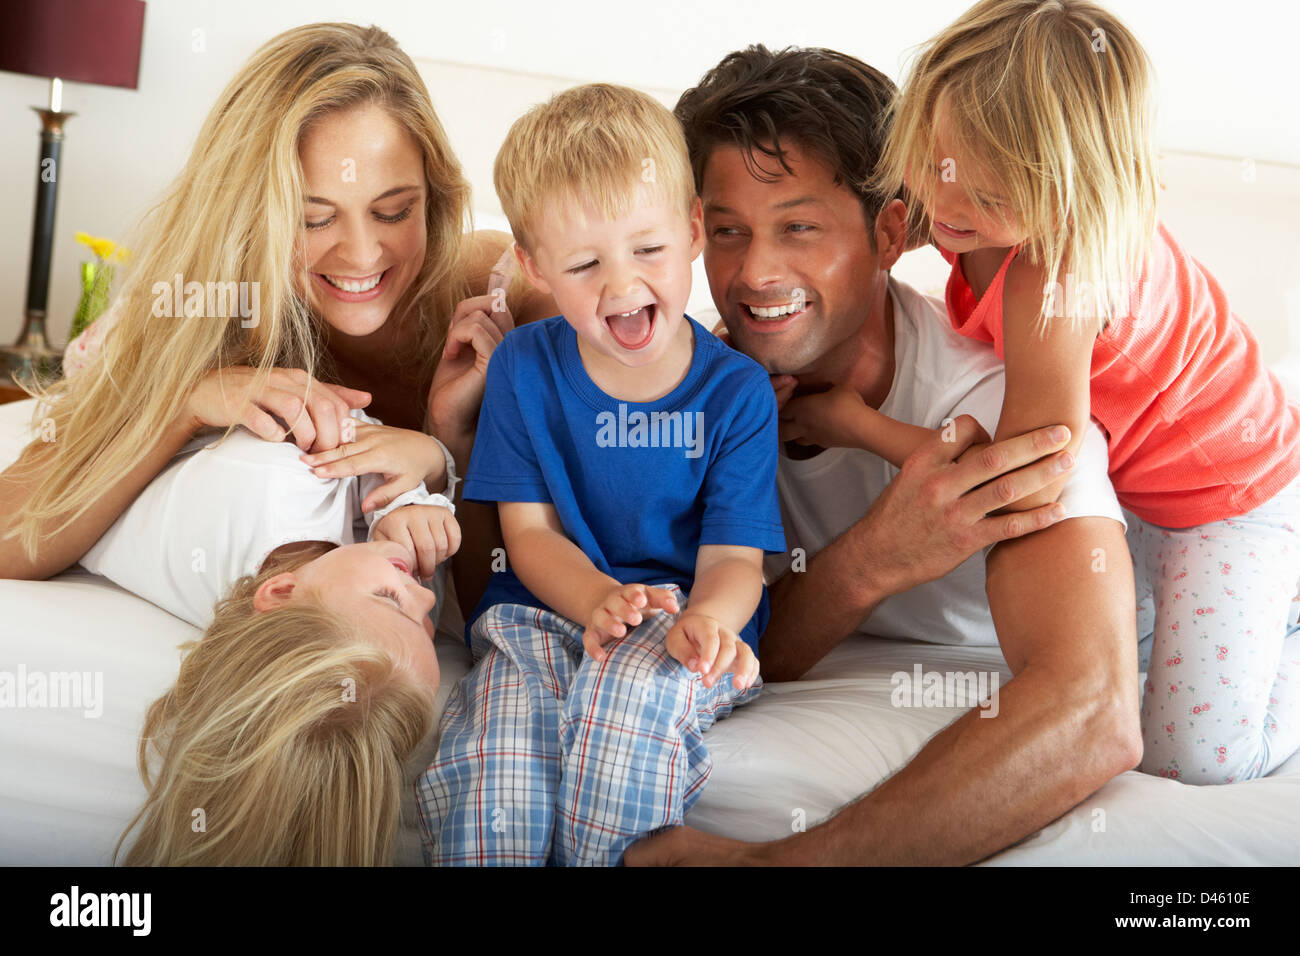 Family Relaxing Together In Bed - Stock Image